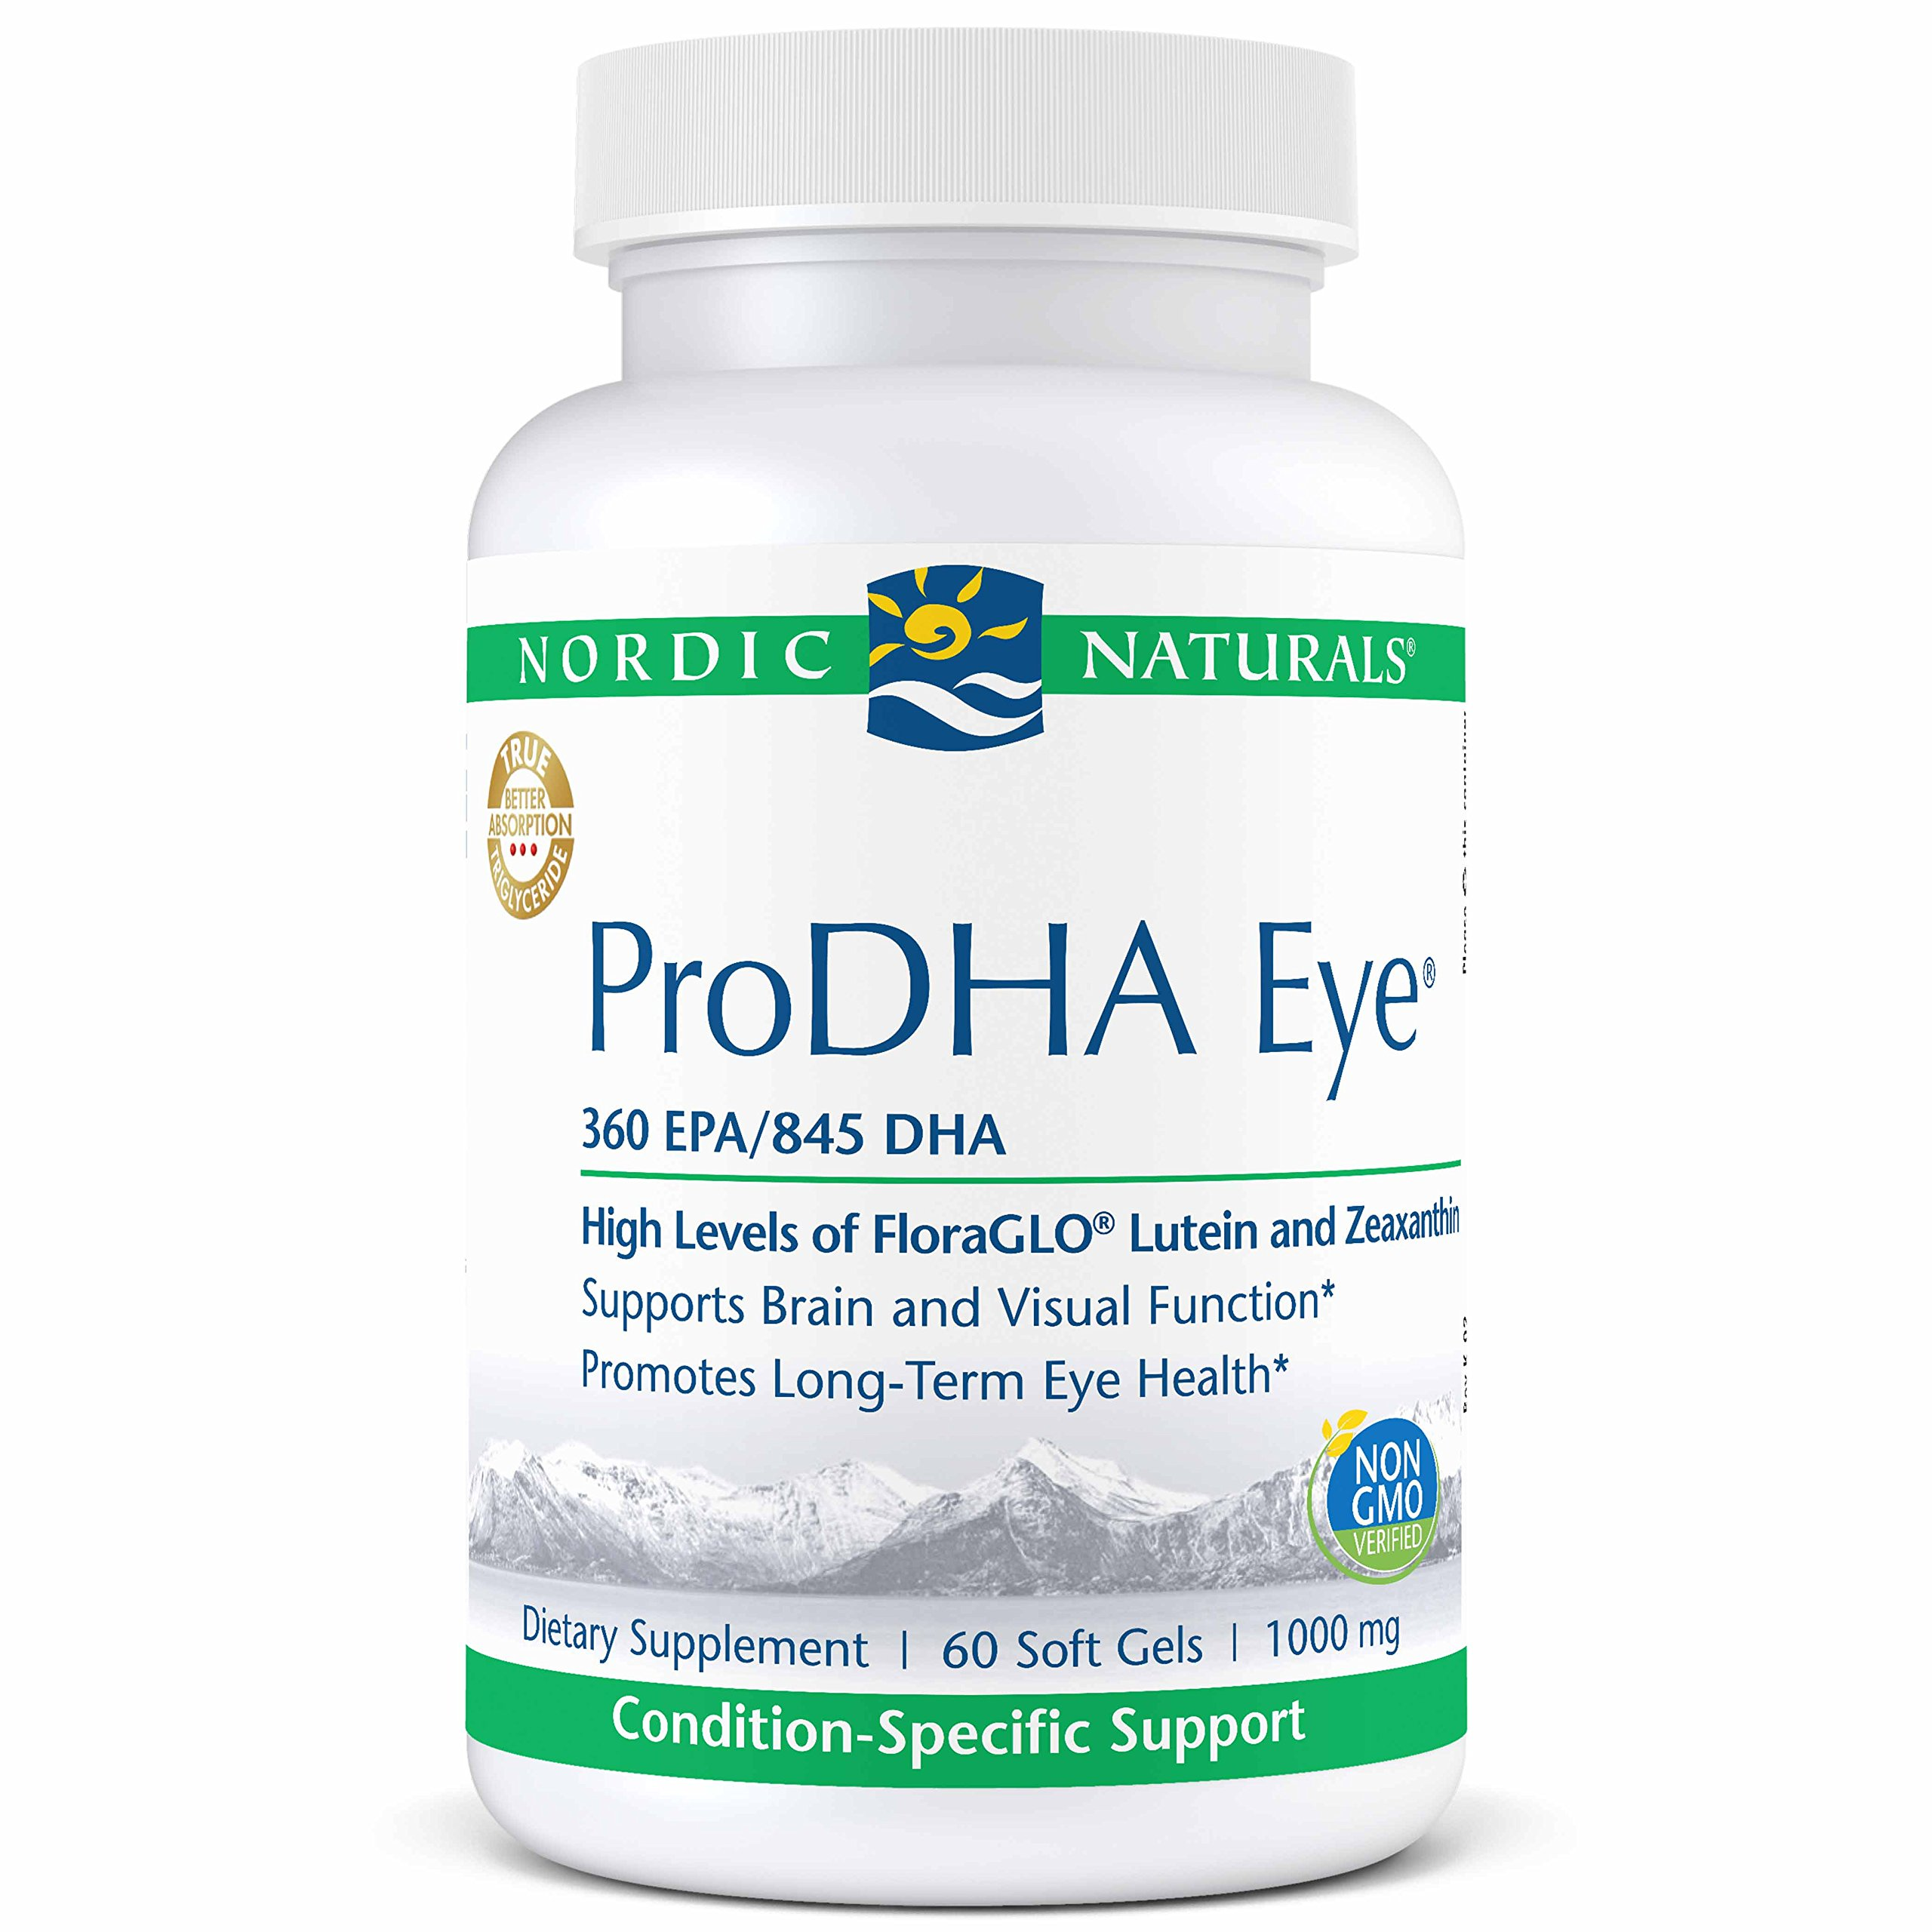 Nordic Naturals Prodha Eye Soft Gels, 60 Count